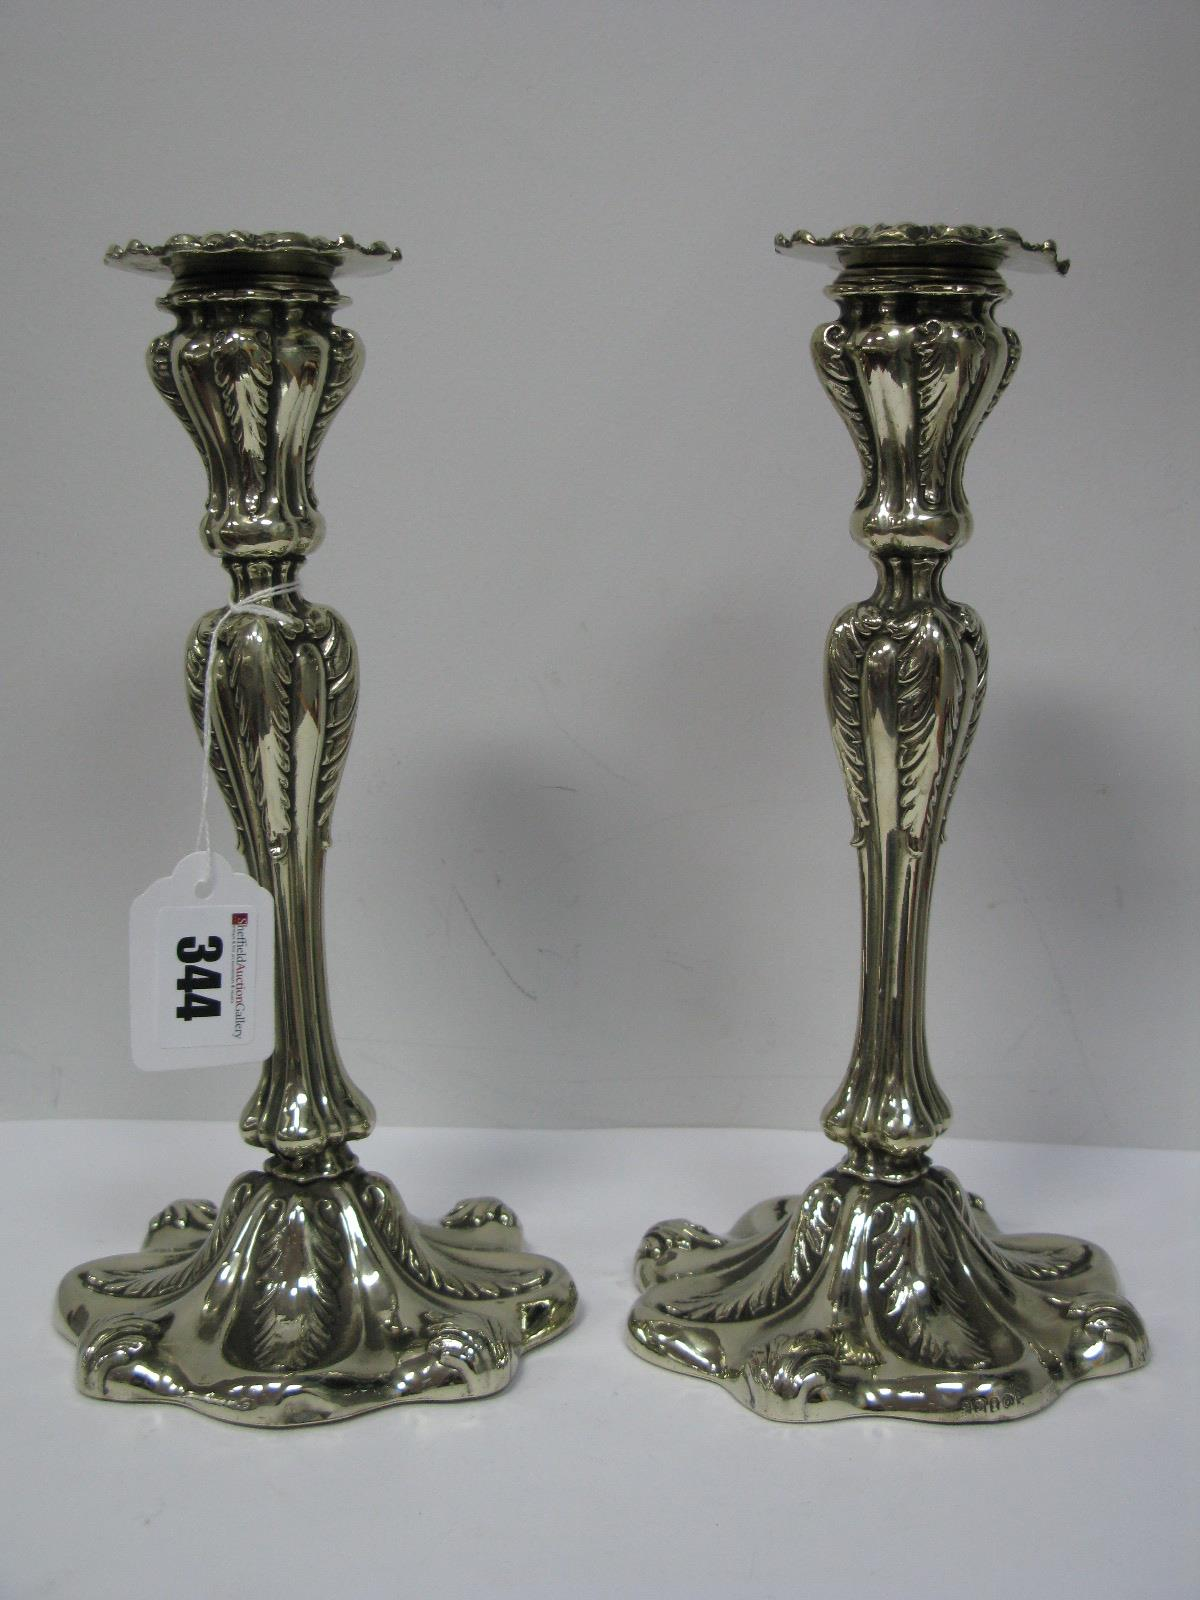 Lot 344 - A Pair of Decorative Continental Style Plated Candlesticks, each shaped base with stylised leaf